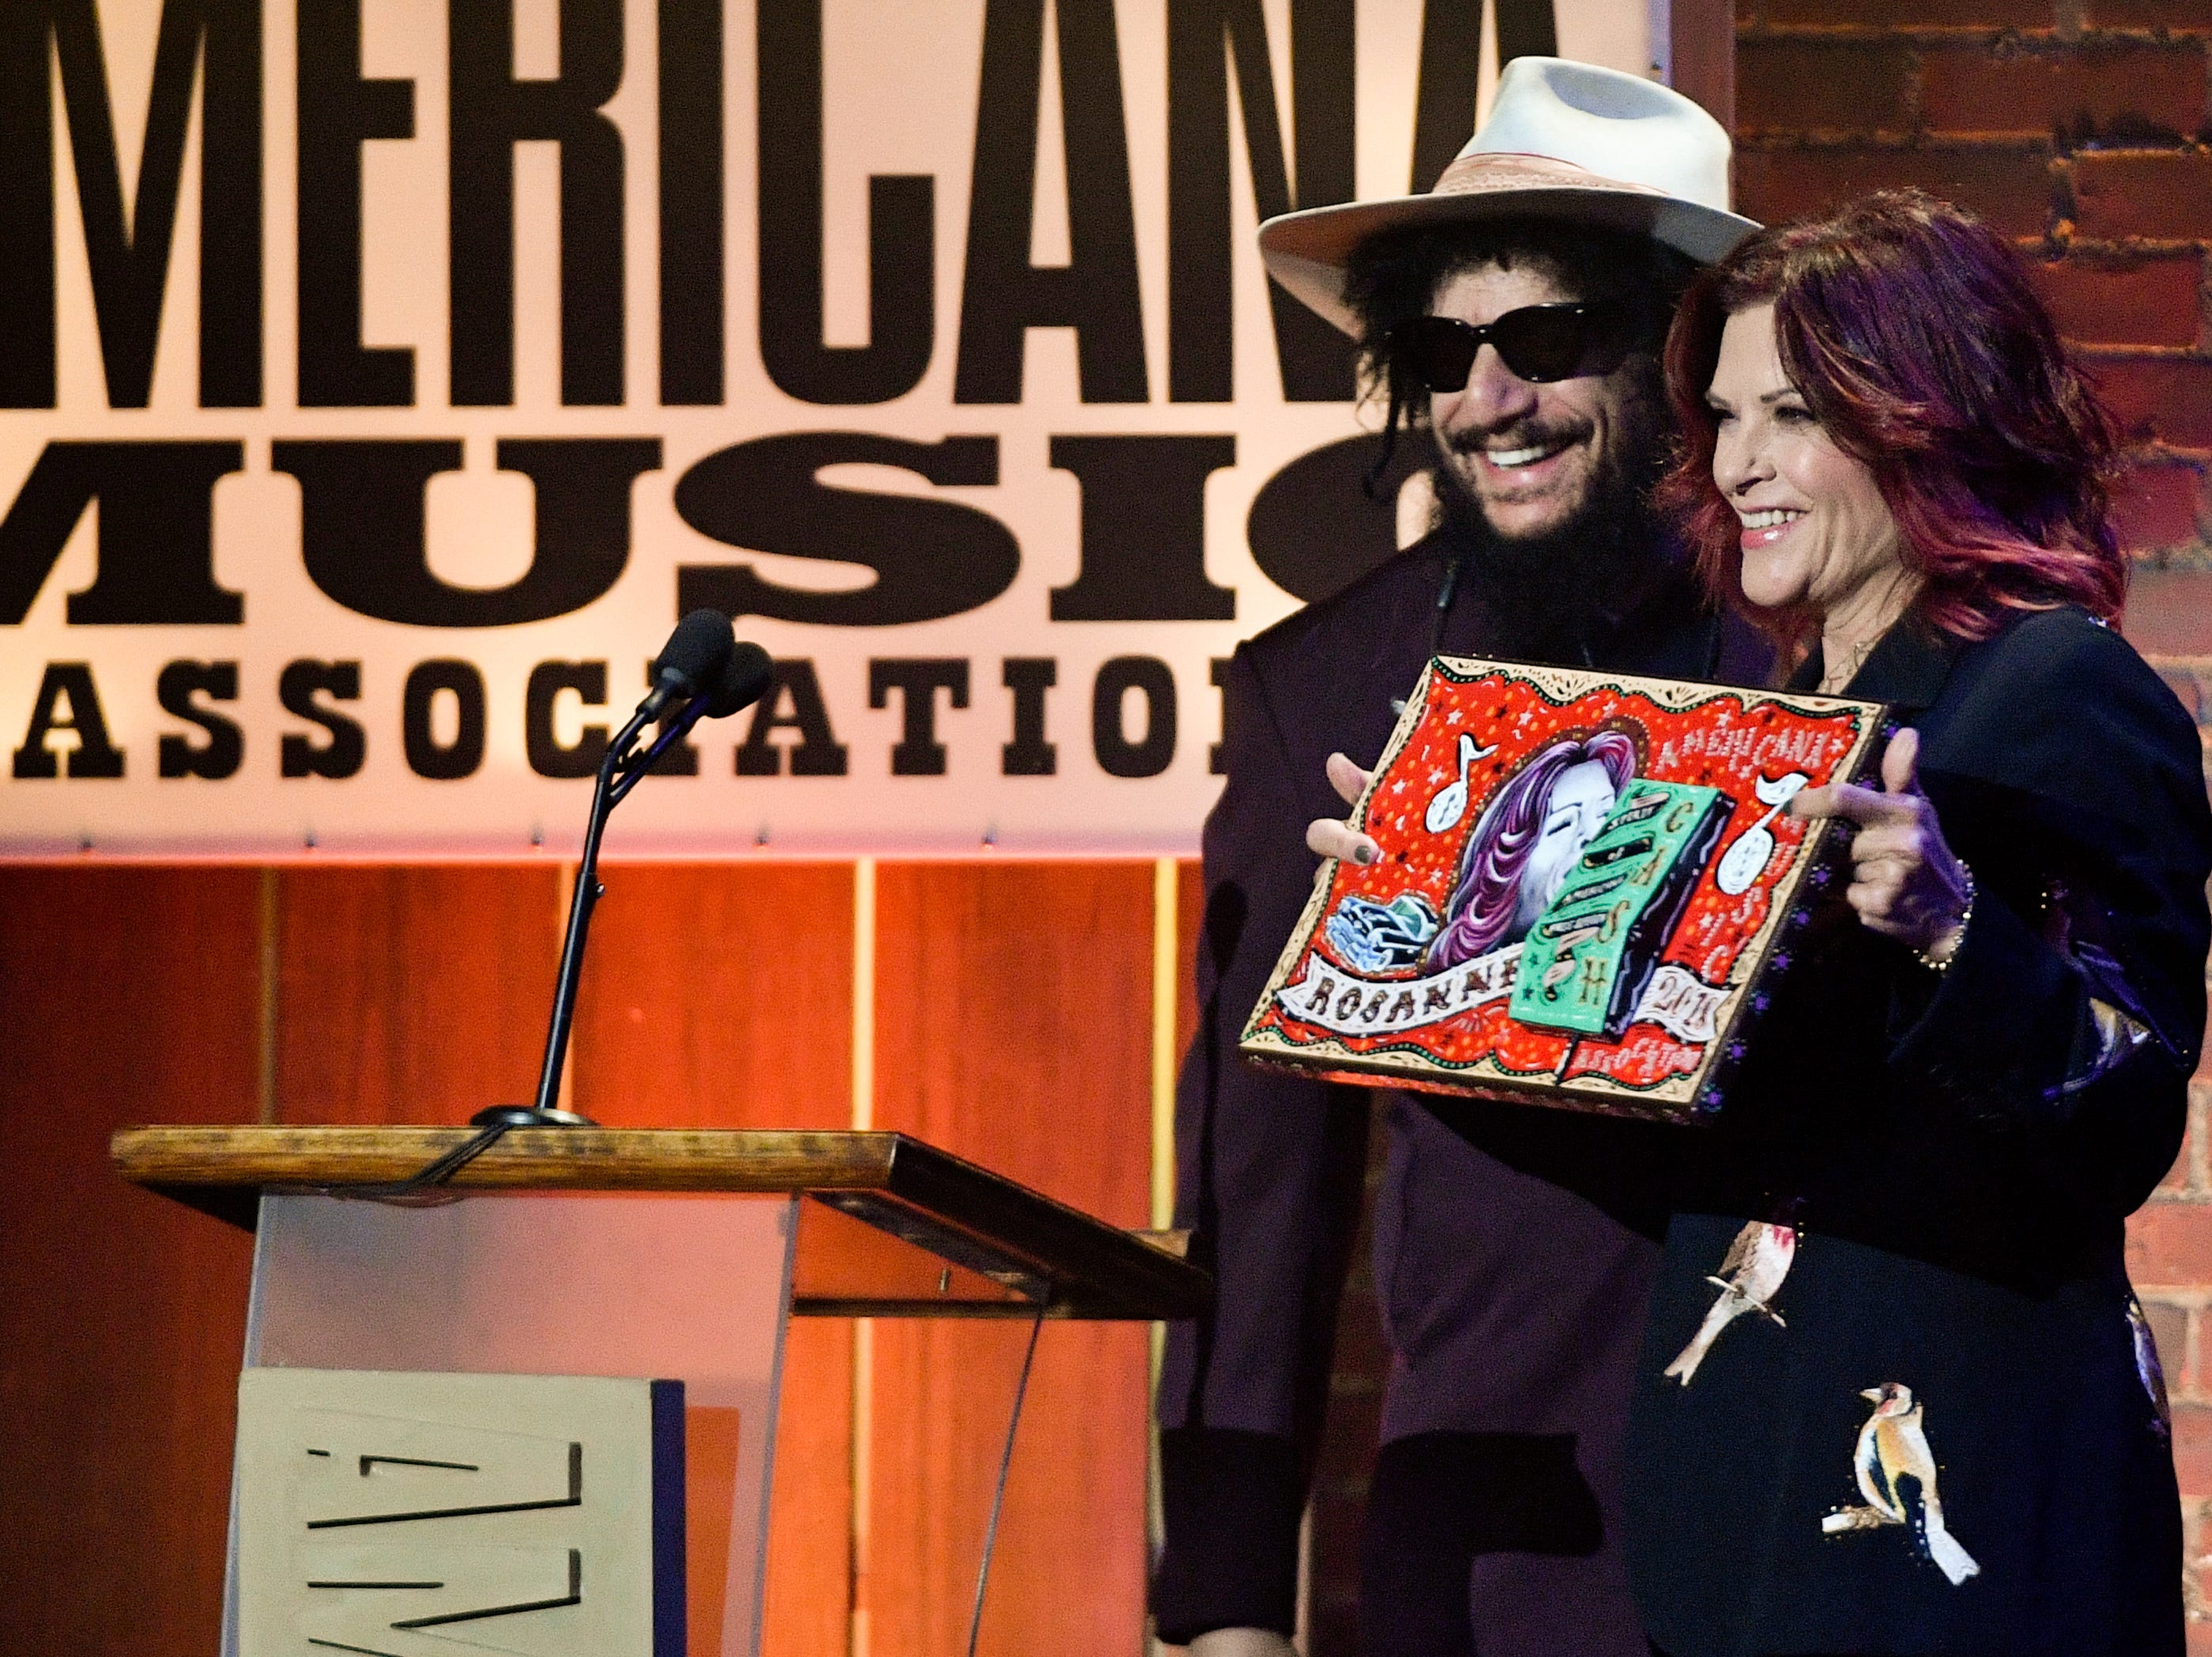 Don Was presents Rosanne Cash with the Freedom of Speech award during the 2018 Americana Honors and Awards show at the Ryman Auditorium in Nashville, Tenn., Wednesday, Sept. 12, 2018.